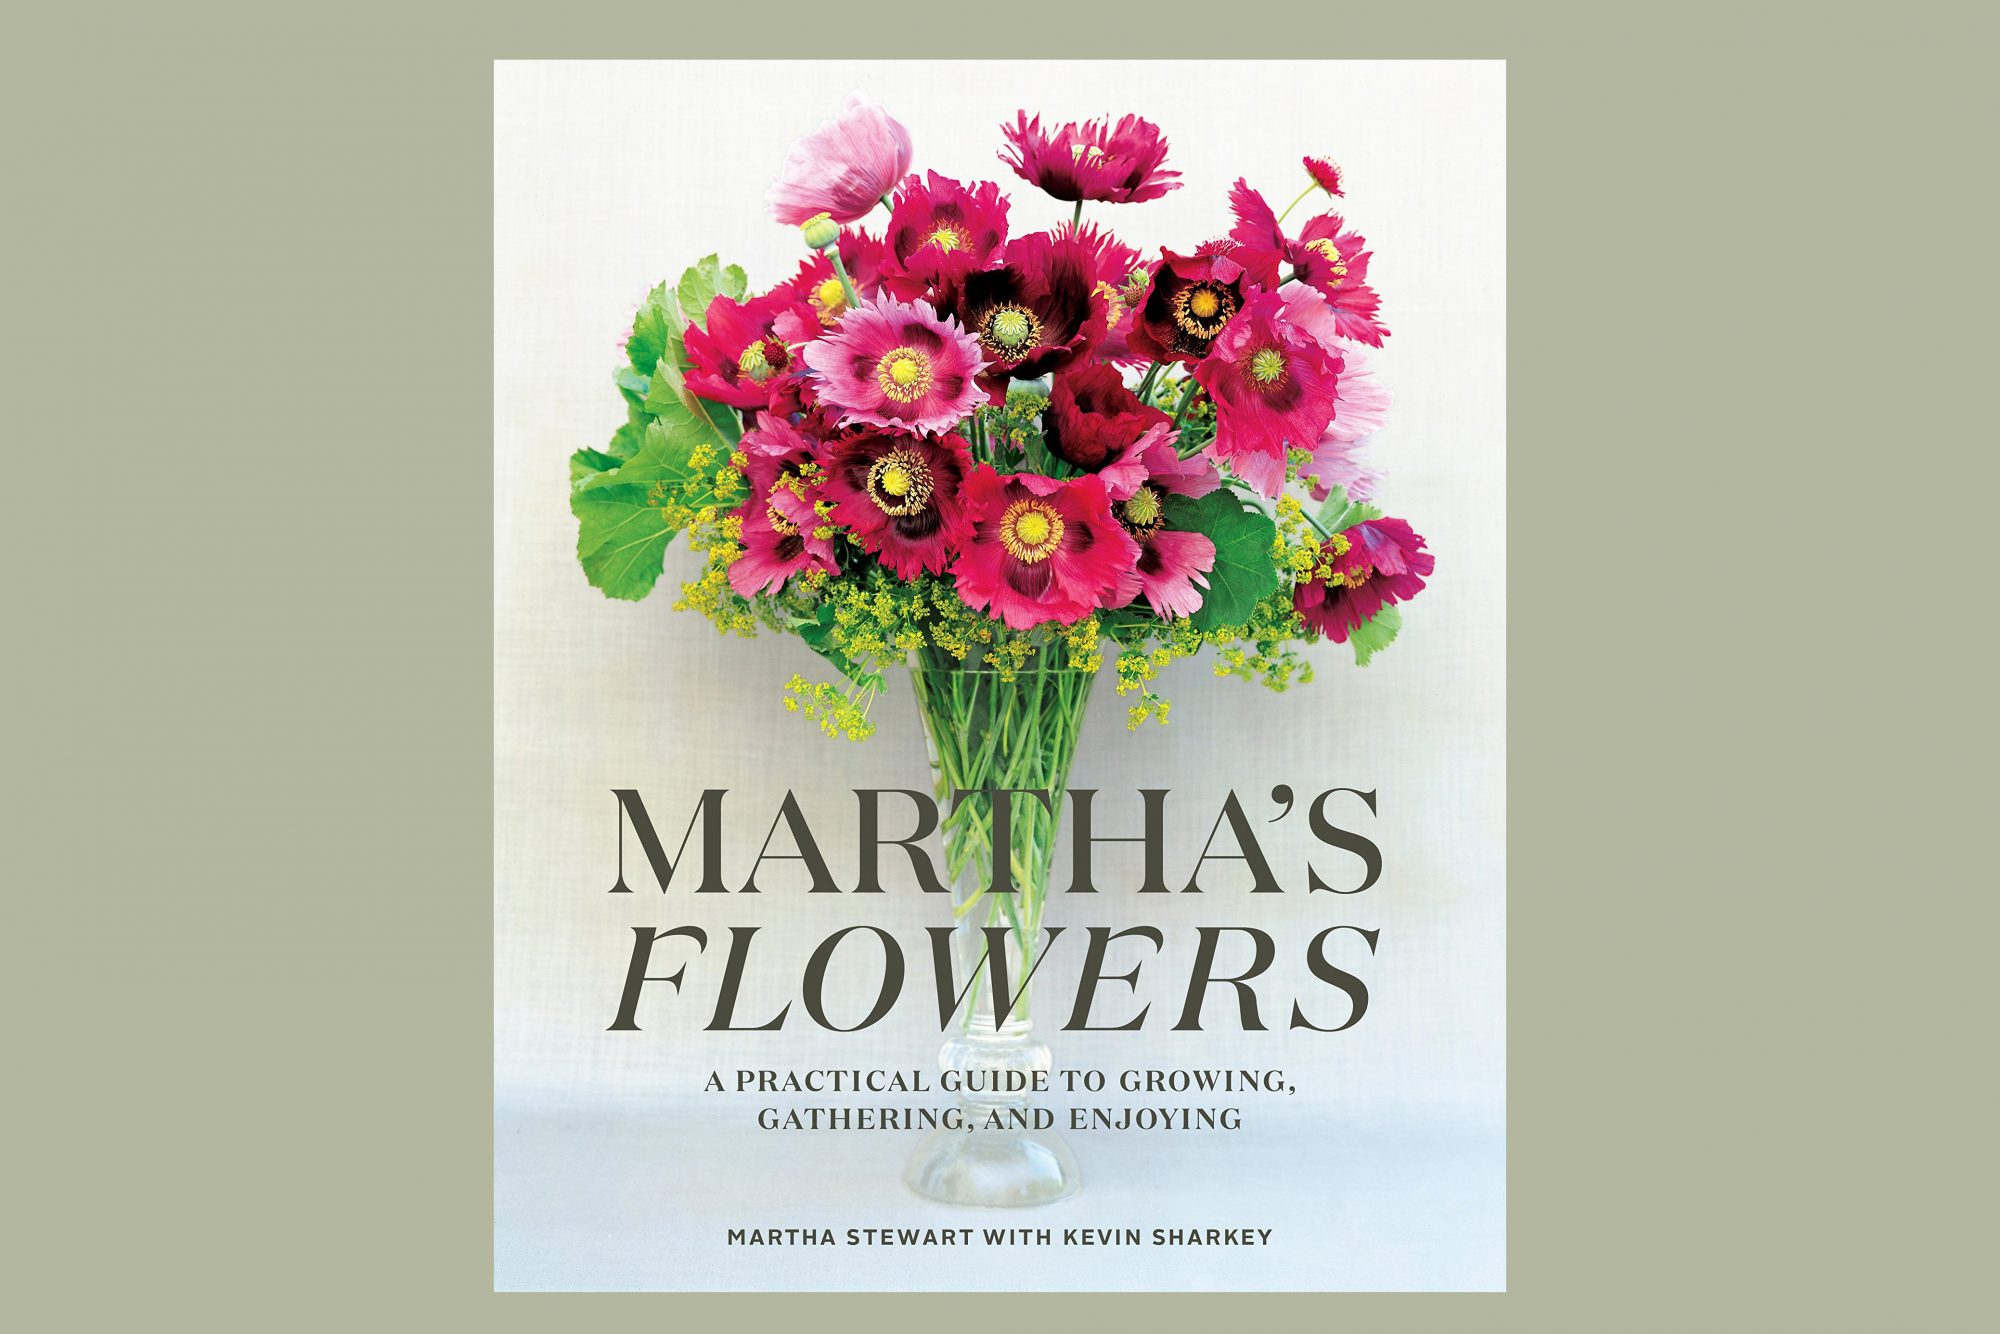 Martha's Flowers: A Practical Guide to Growing, Gathering, and Enjoying by Martha Stewart and Kevin Sharkey